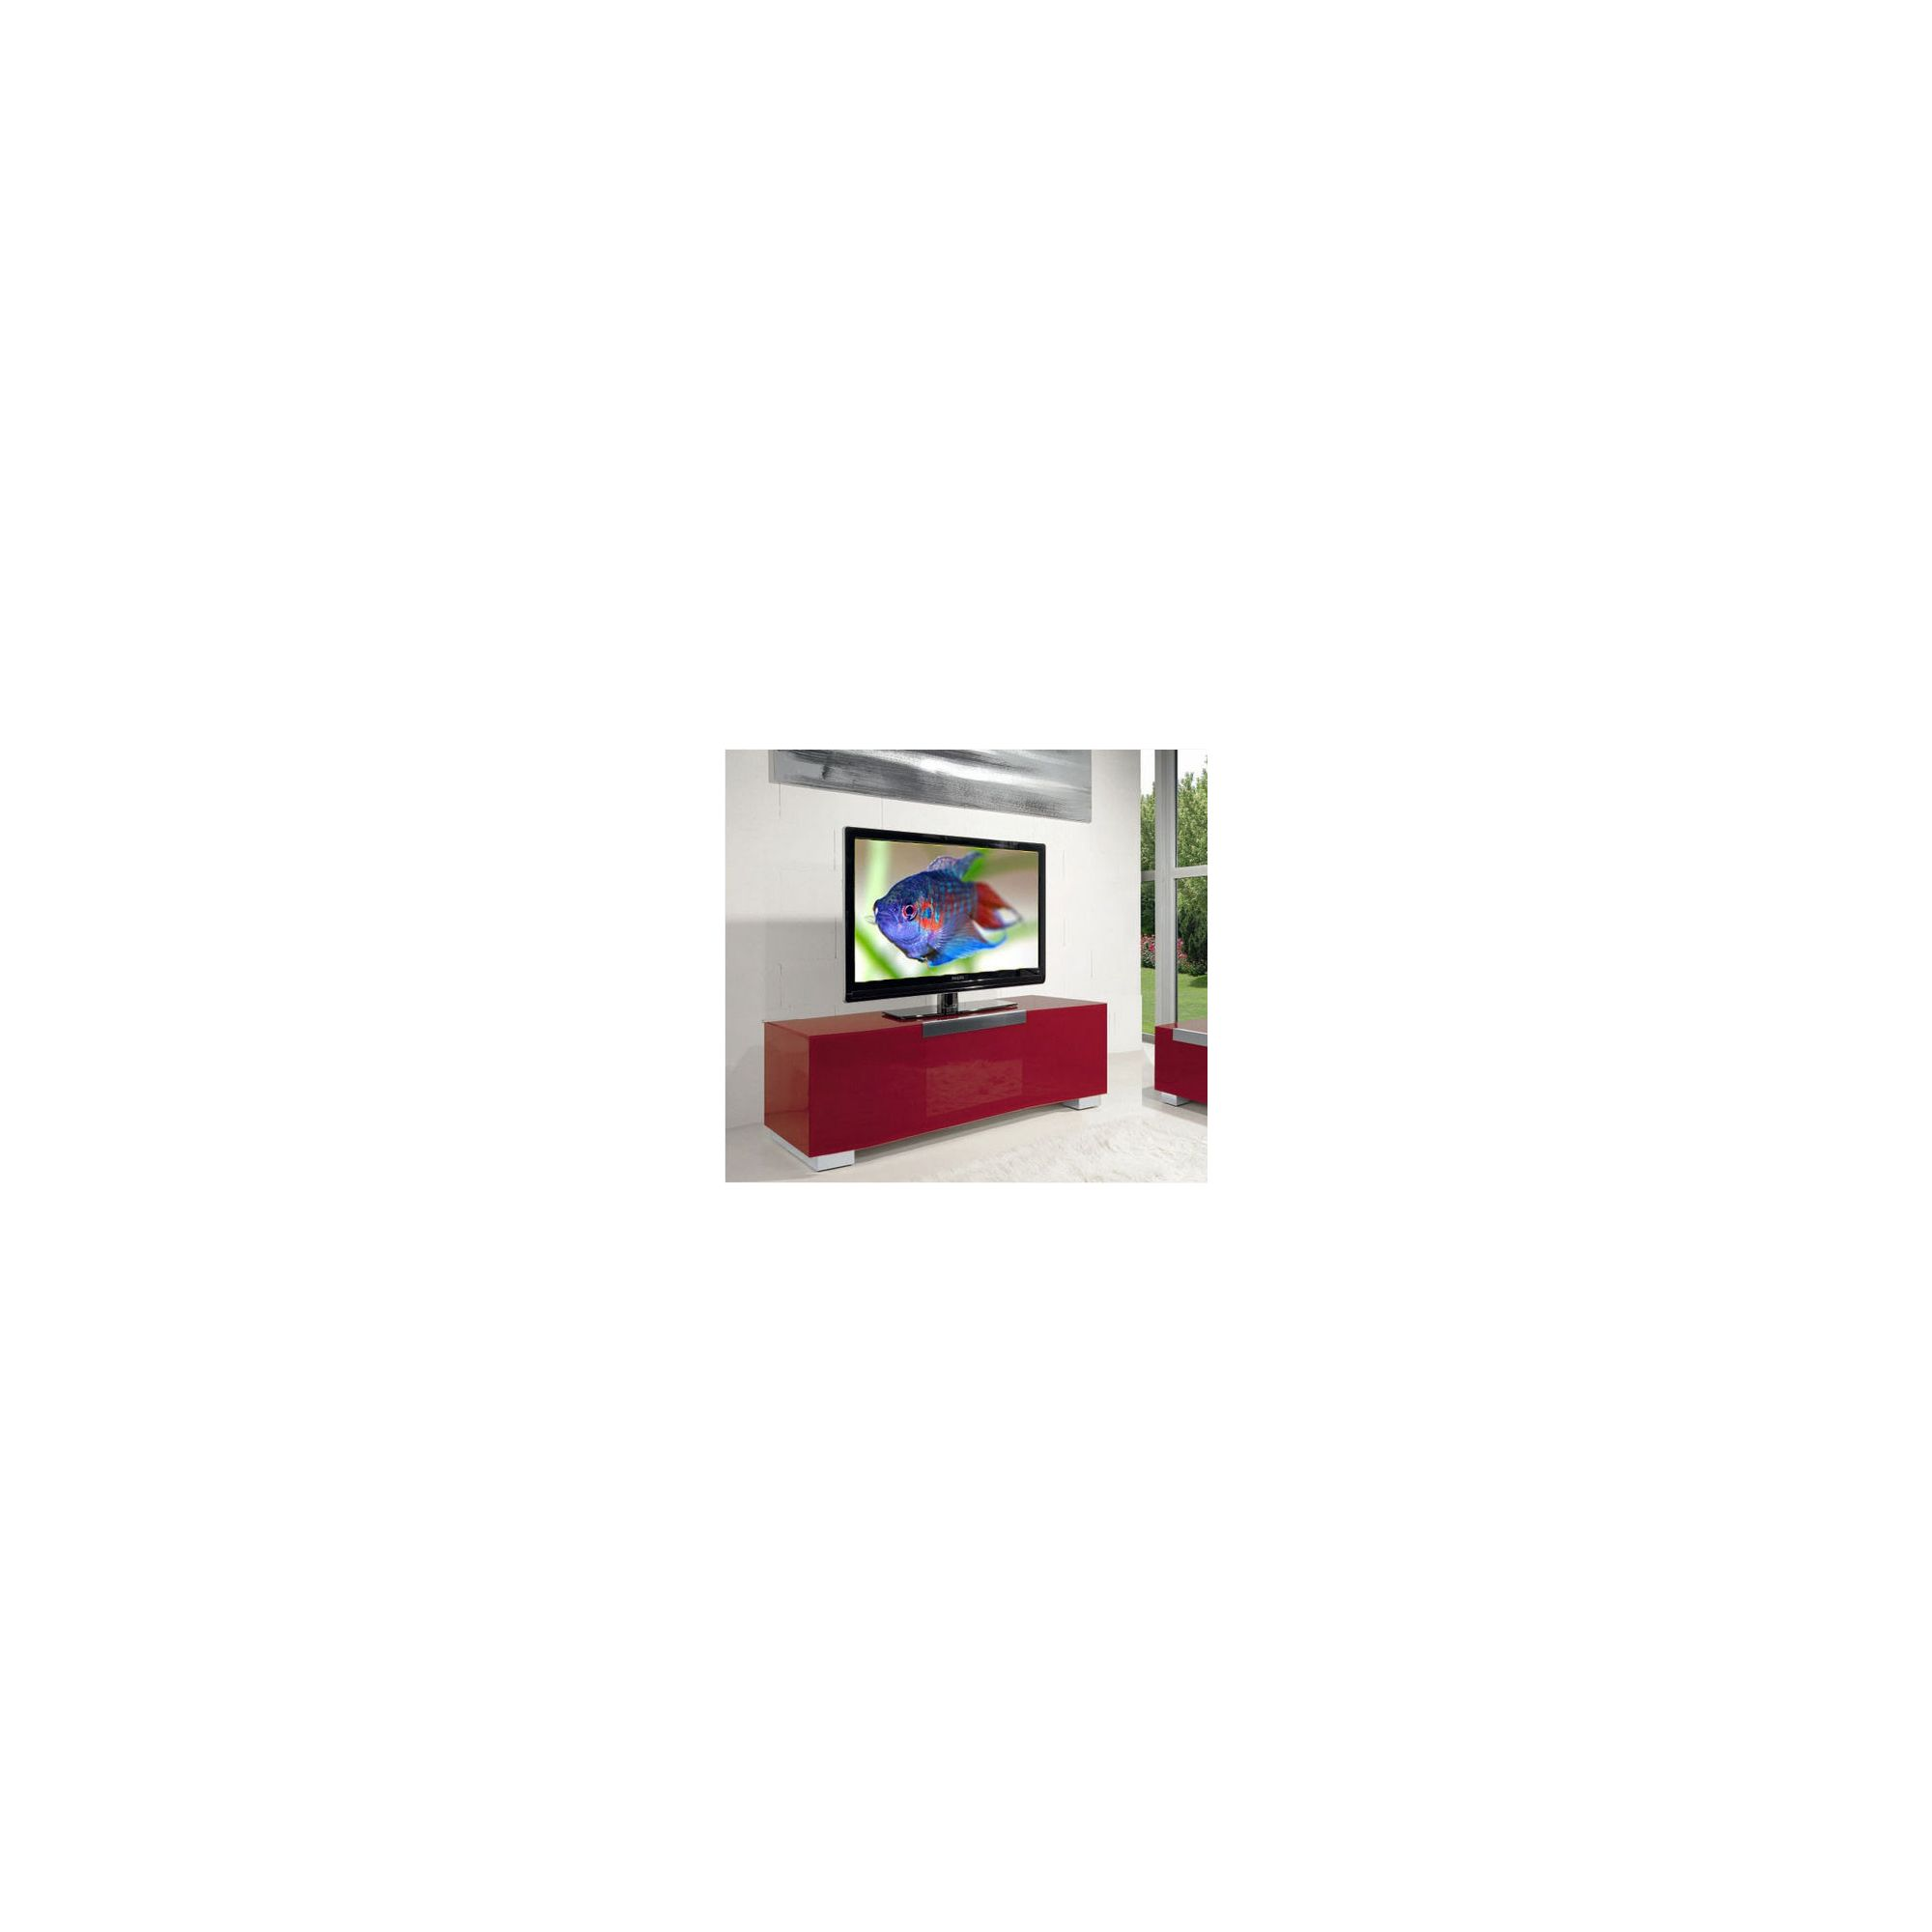 Triskom Stainless Steel / Glass TV Stand for LCD / Plasmas - Red Glass at Tescos Direct